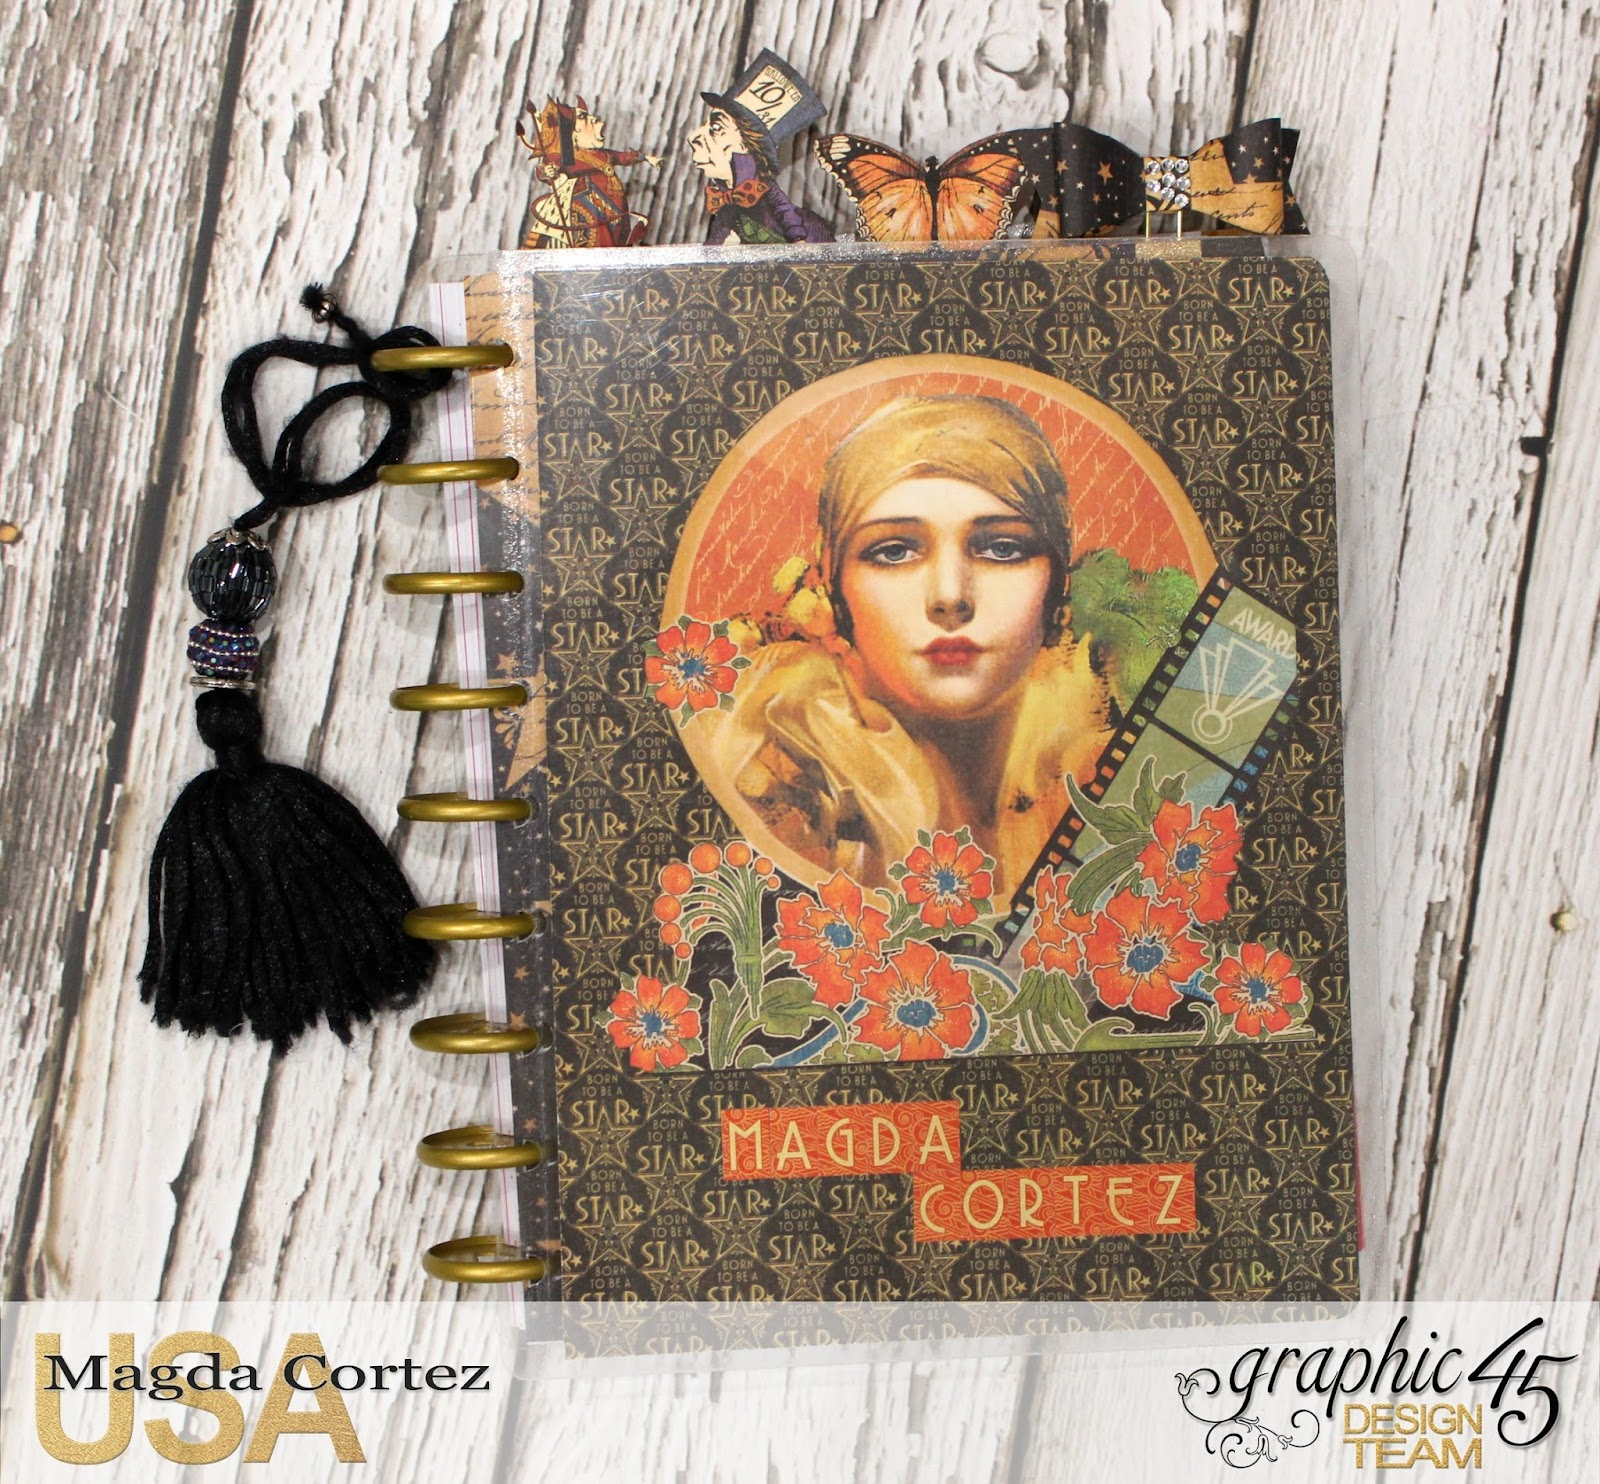 01. My G45 Planner August, Vintage Hollywood By Magda Cortez, Product By Graphic 45, Photo 01 of 26.jpg